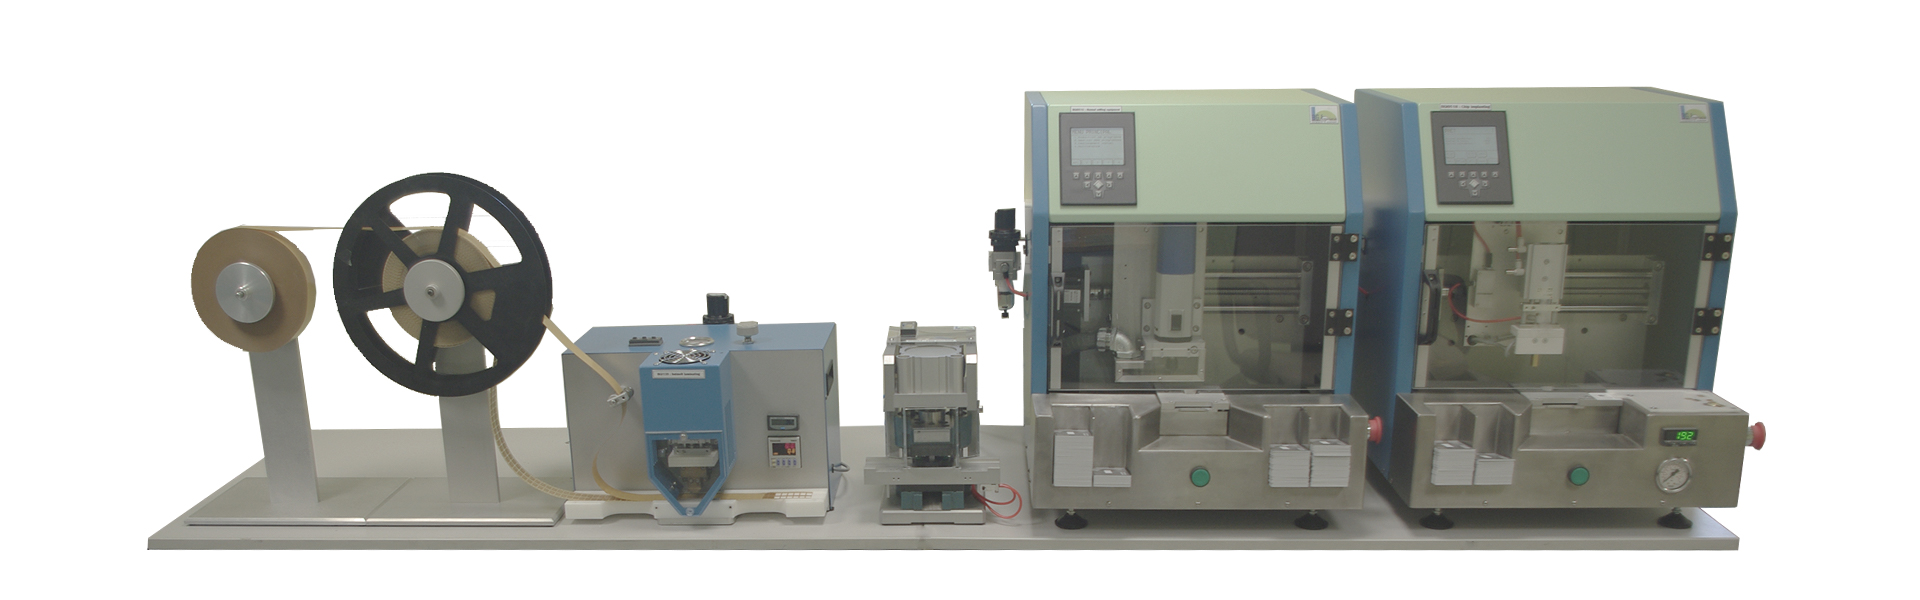 Card manufacturing equipment